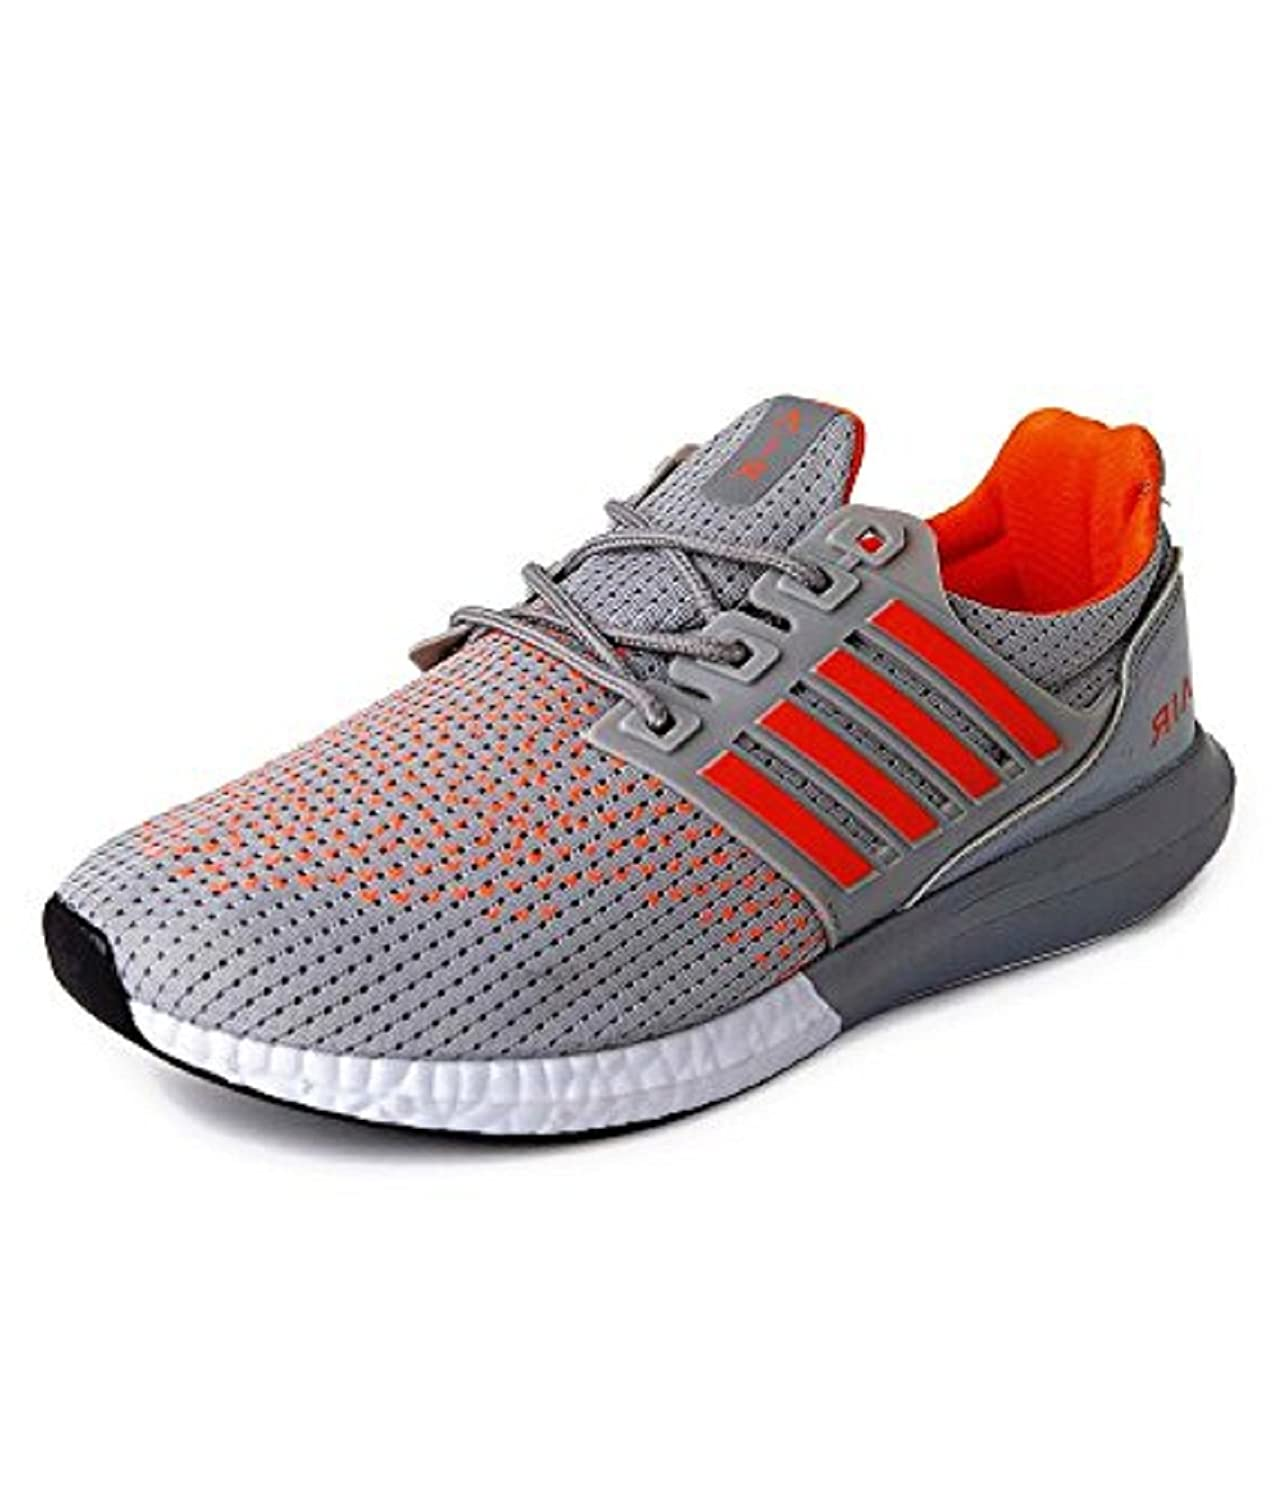 Top 10 Selling Best Sport Shoes Under Rs 1000 in India